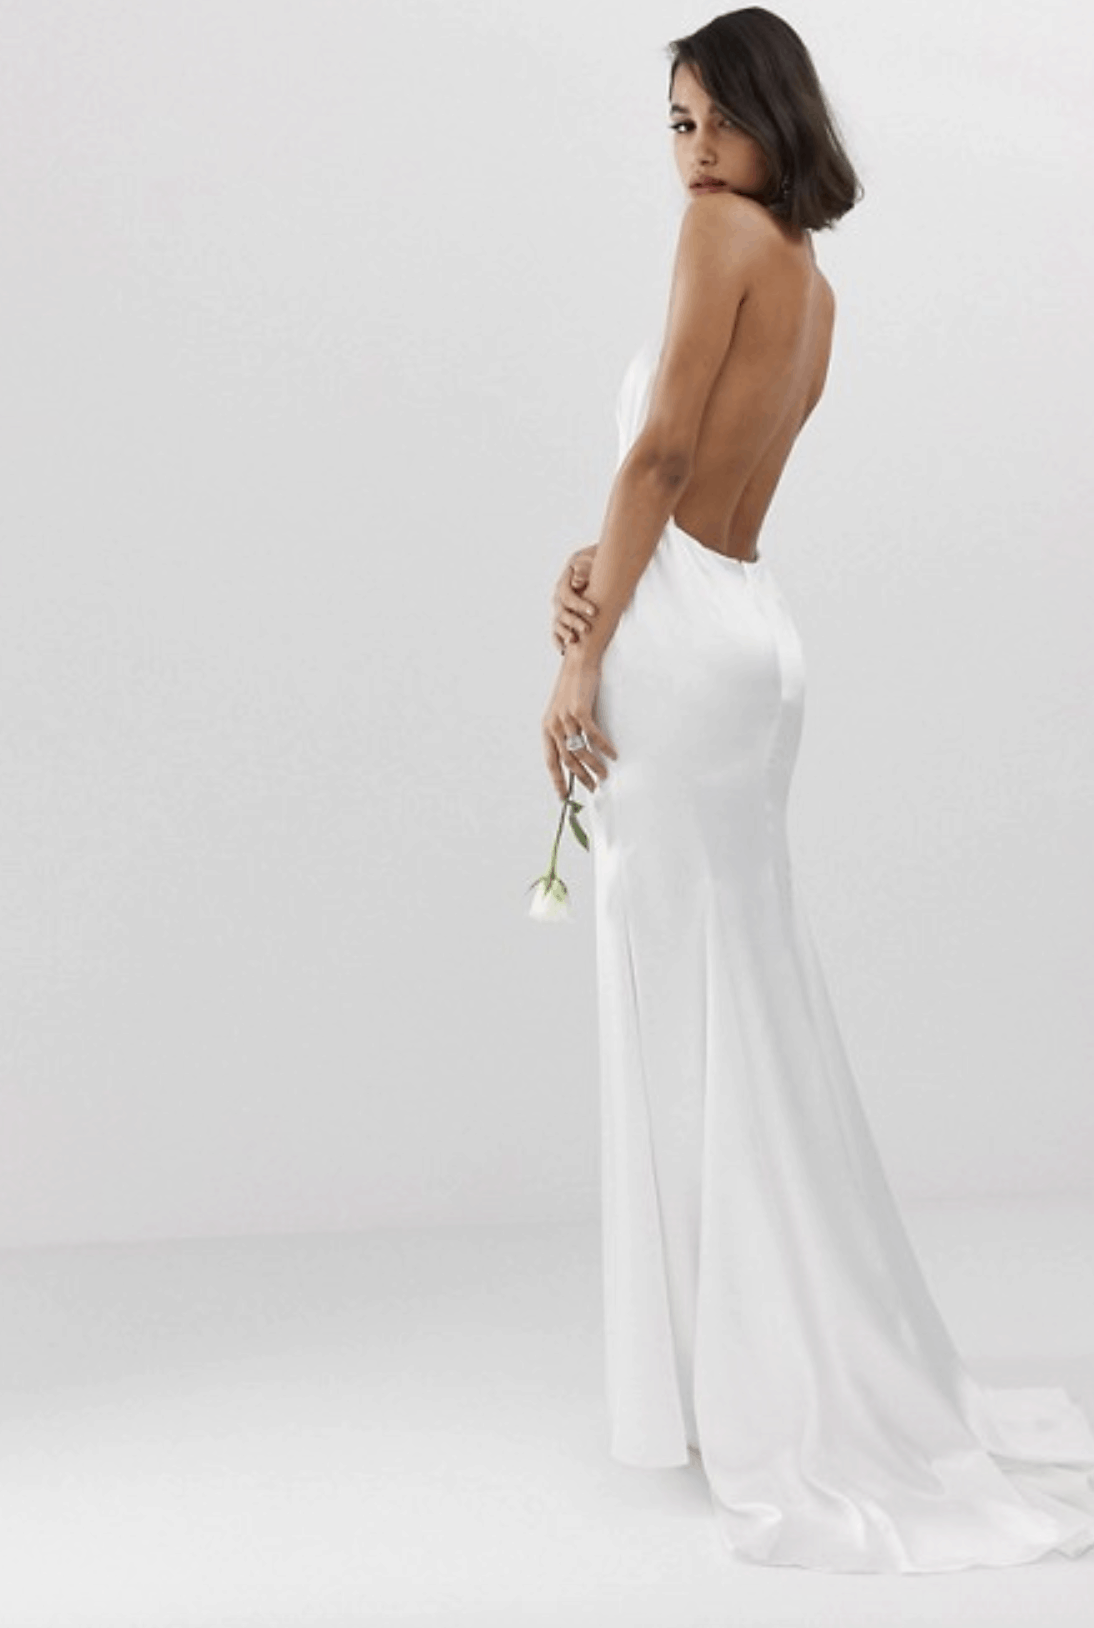 Cheap Affordable Bridal Gowns and Wedding Dresses ASOS Edition Halter Backless Maxi Wedding Dresses